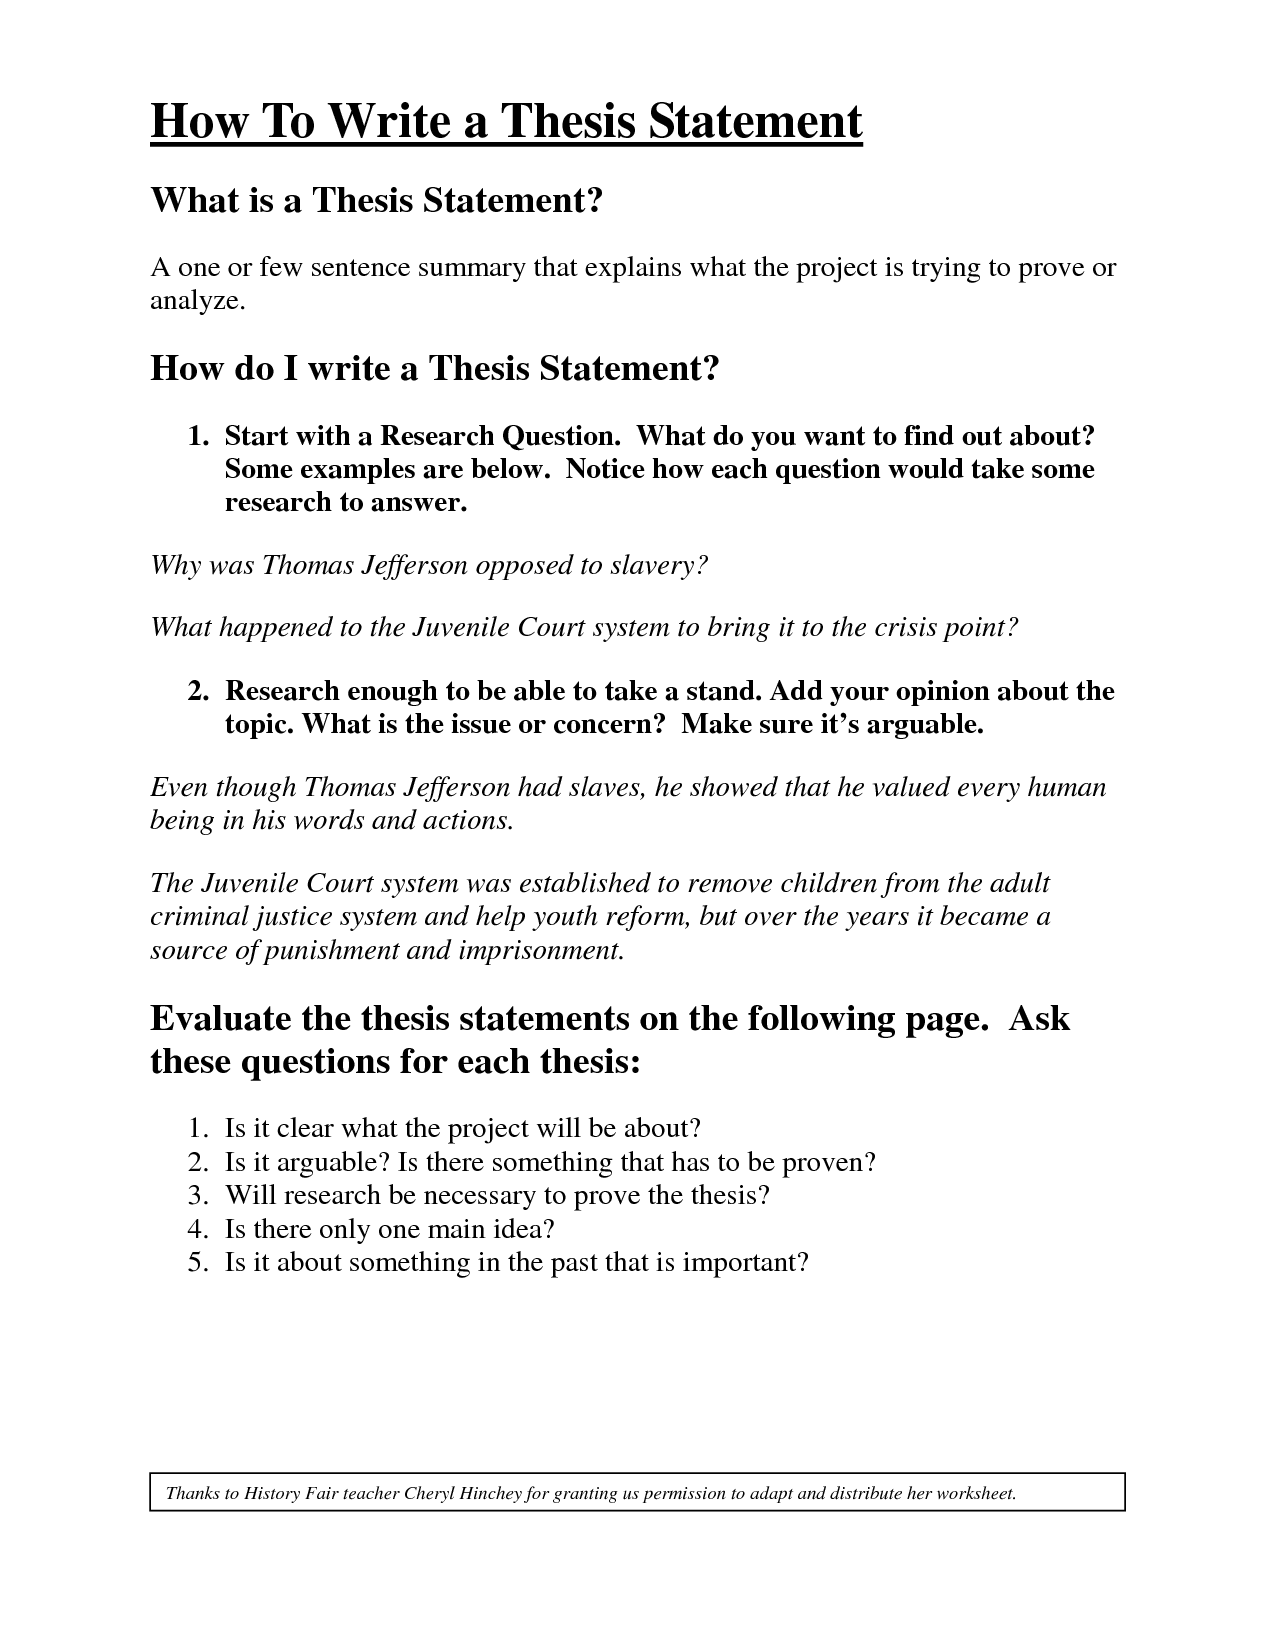 Writing Great Thesis Statement Professional Service With Amazing Examples Statements For Writing A Thesis Statement Thesis Statement Thesis Statement Examples